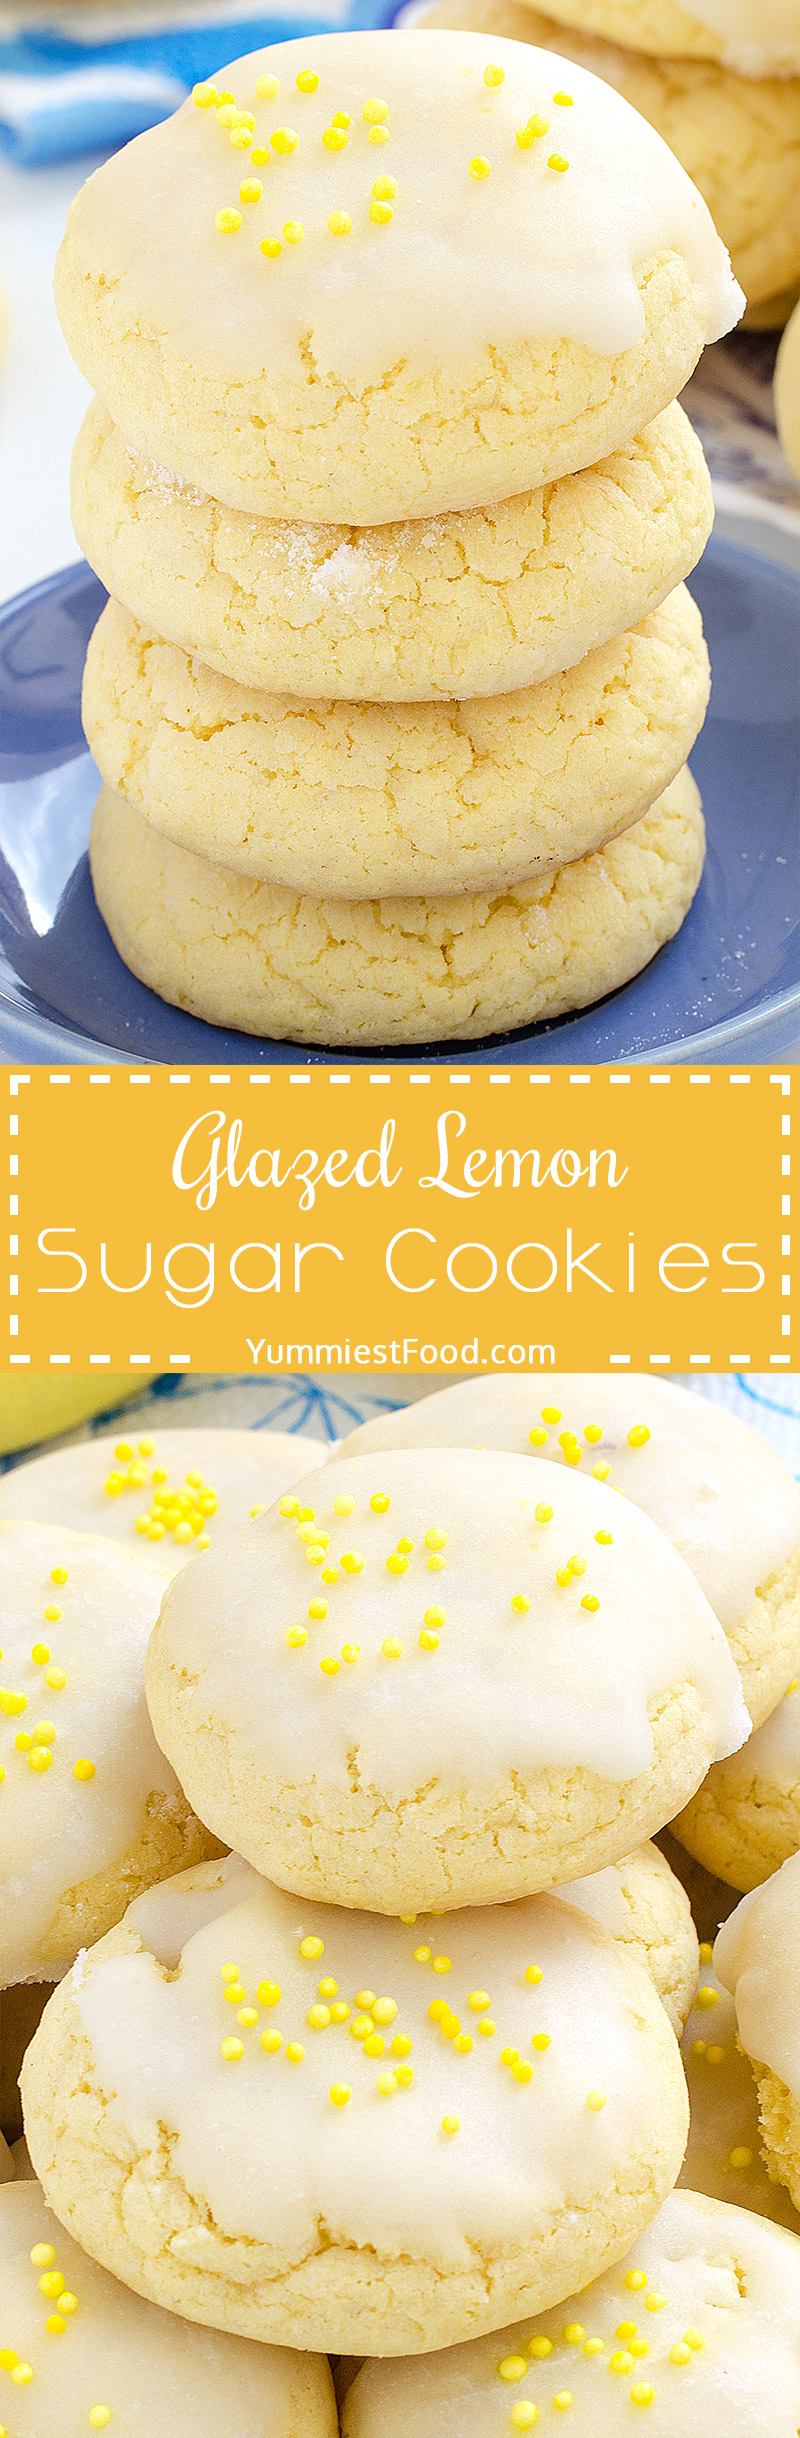 Glazed Lemon Sugar Cookies - so sweet, delicious and refreshing! Very easy and quick to make with only few ingredients!